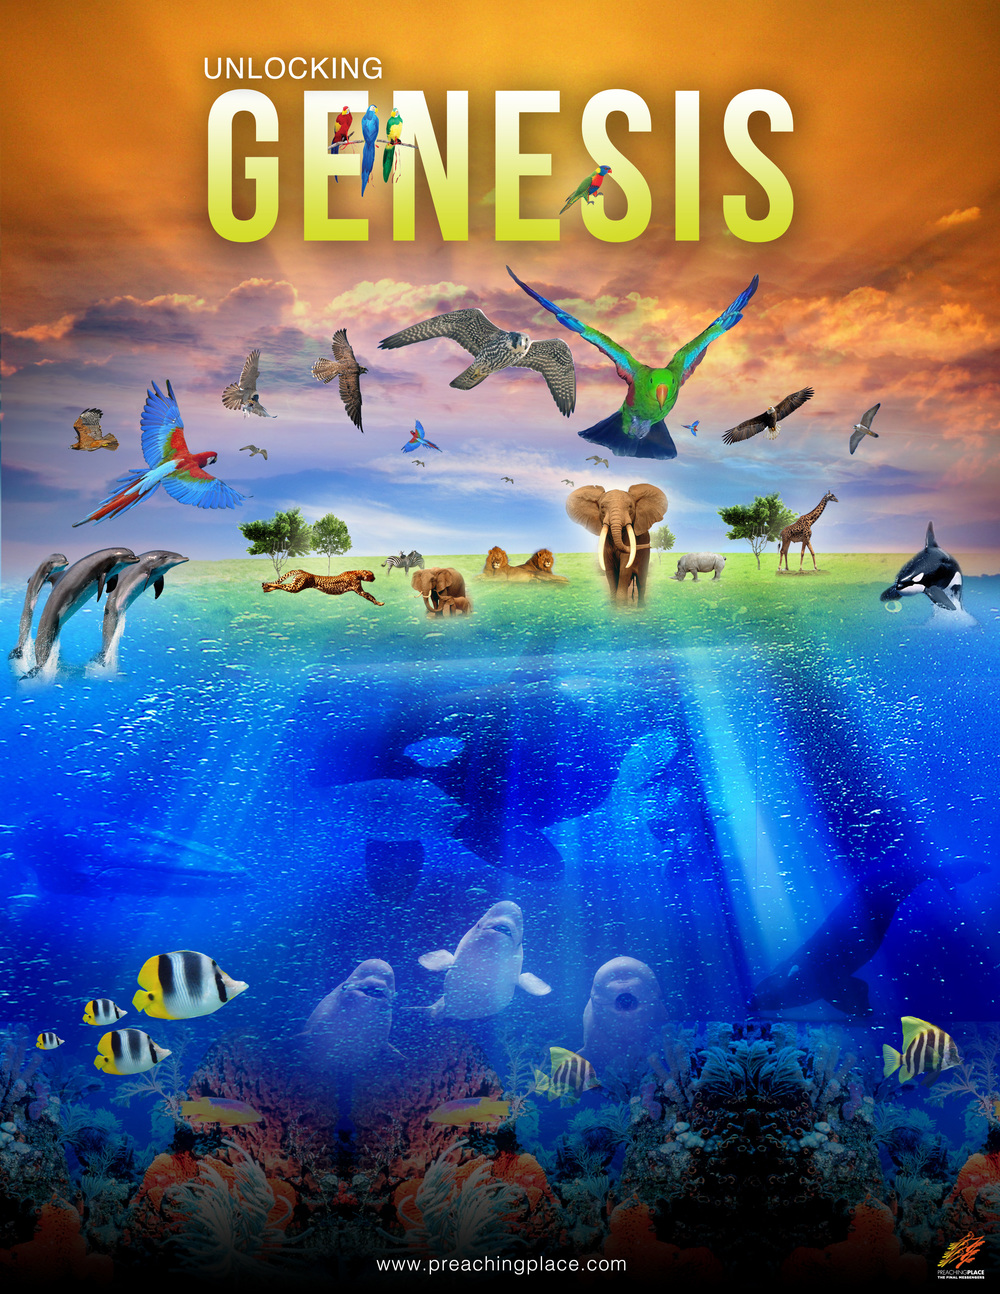 Unlocking Genesis - Official Poster By PreachingPlace